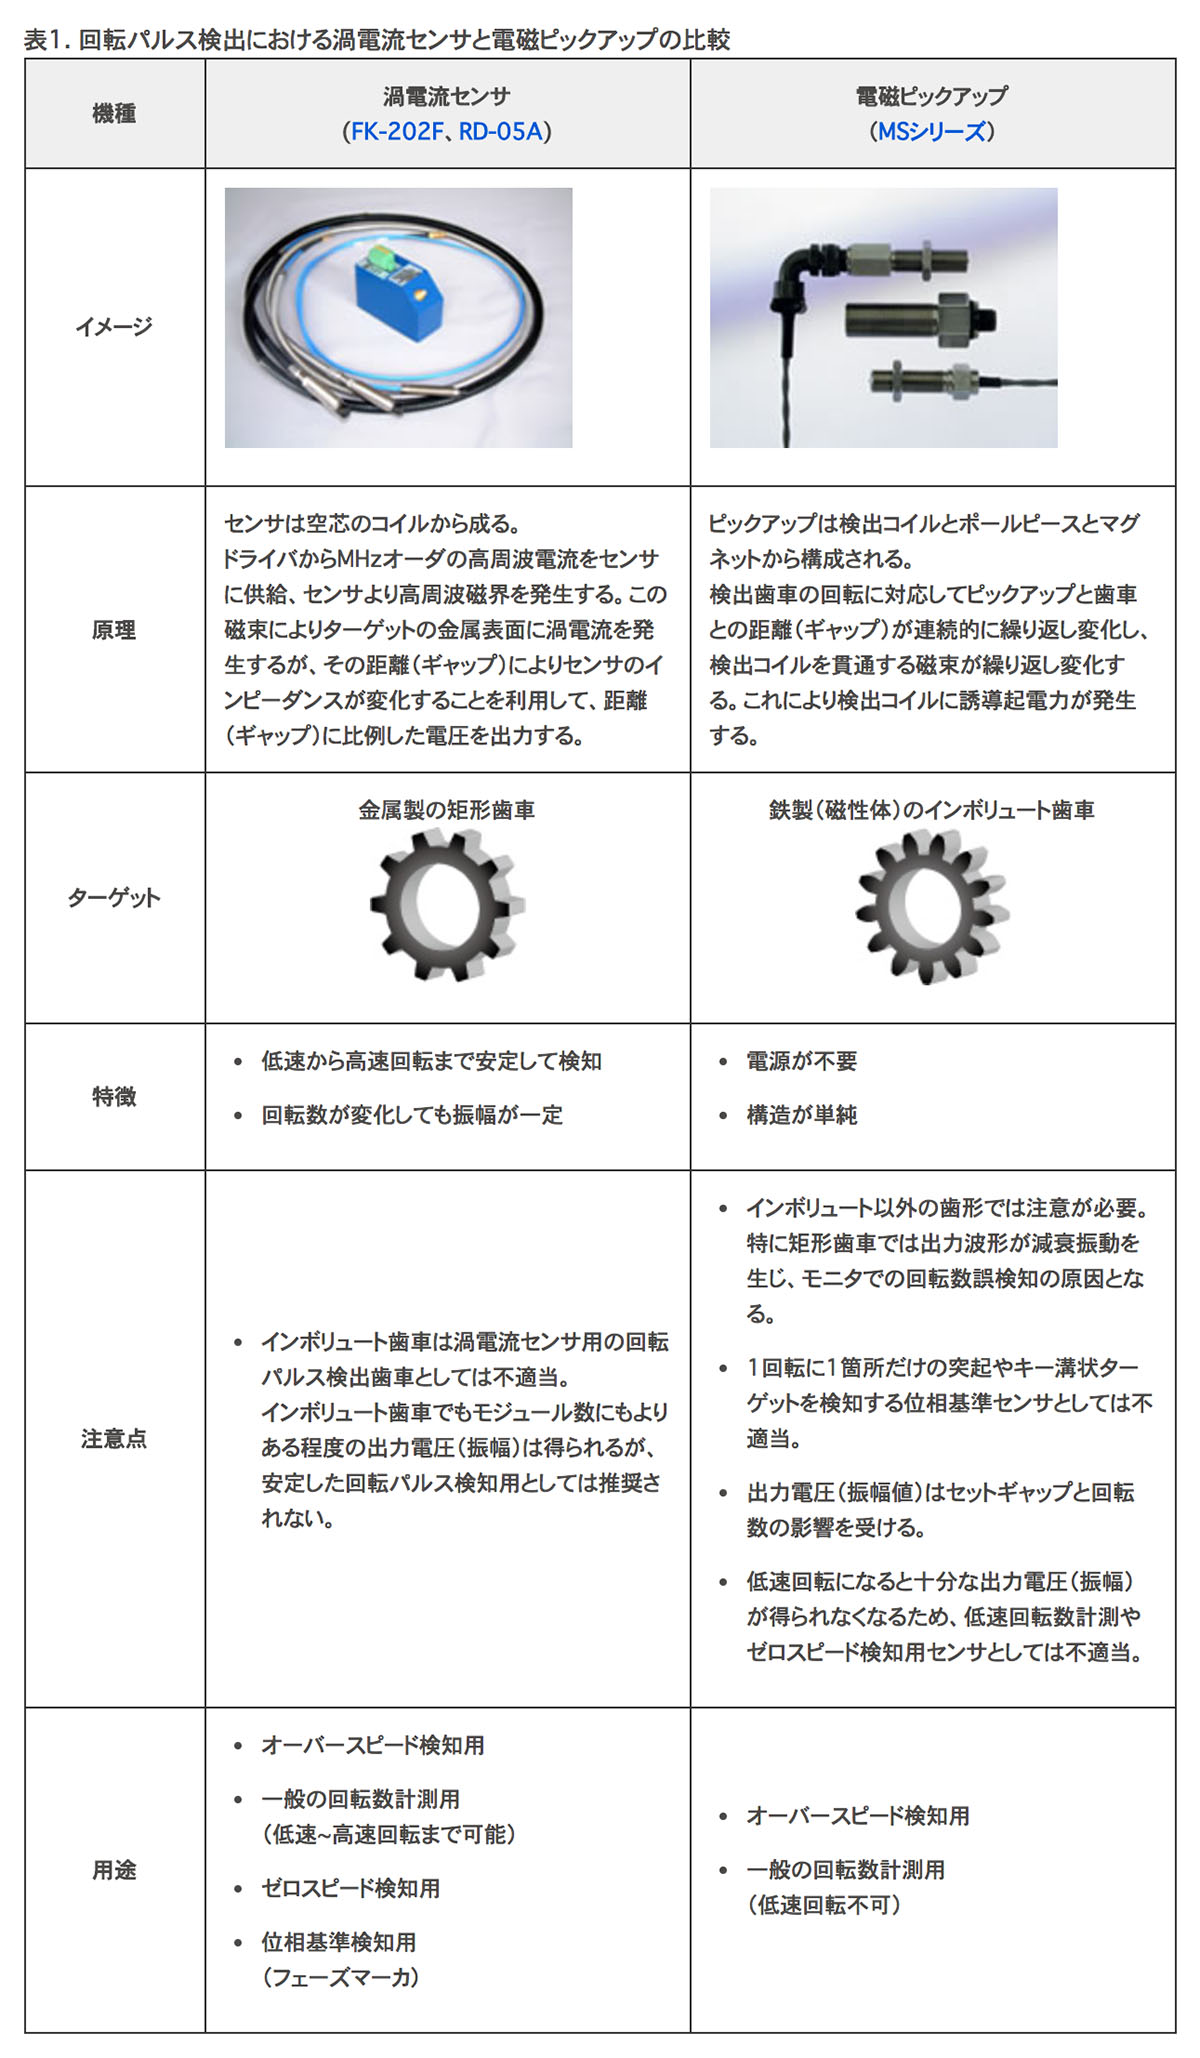 screencapture-shinkawaelectric-column-20120313-html-1490937288434のコピー